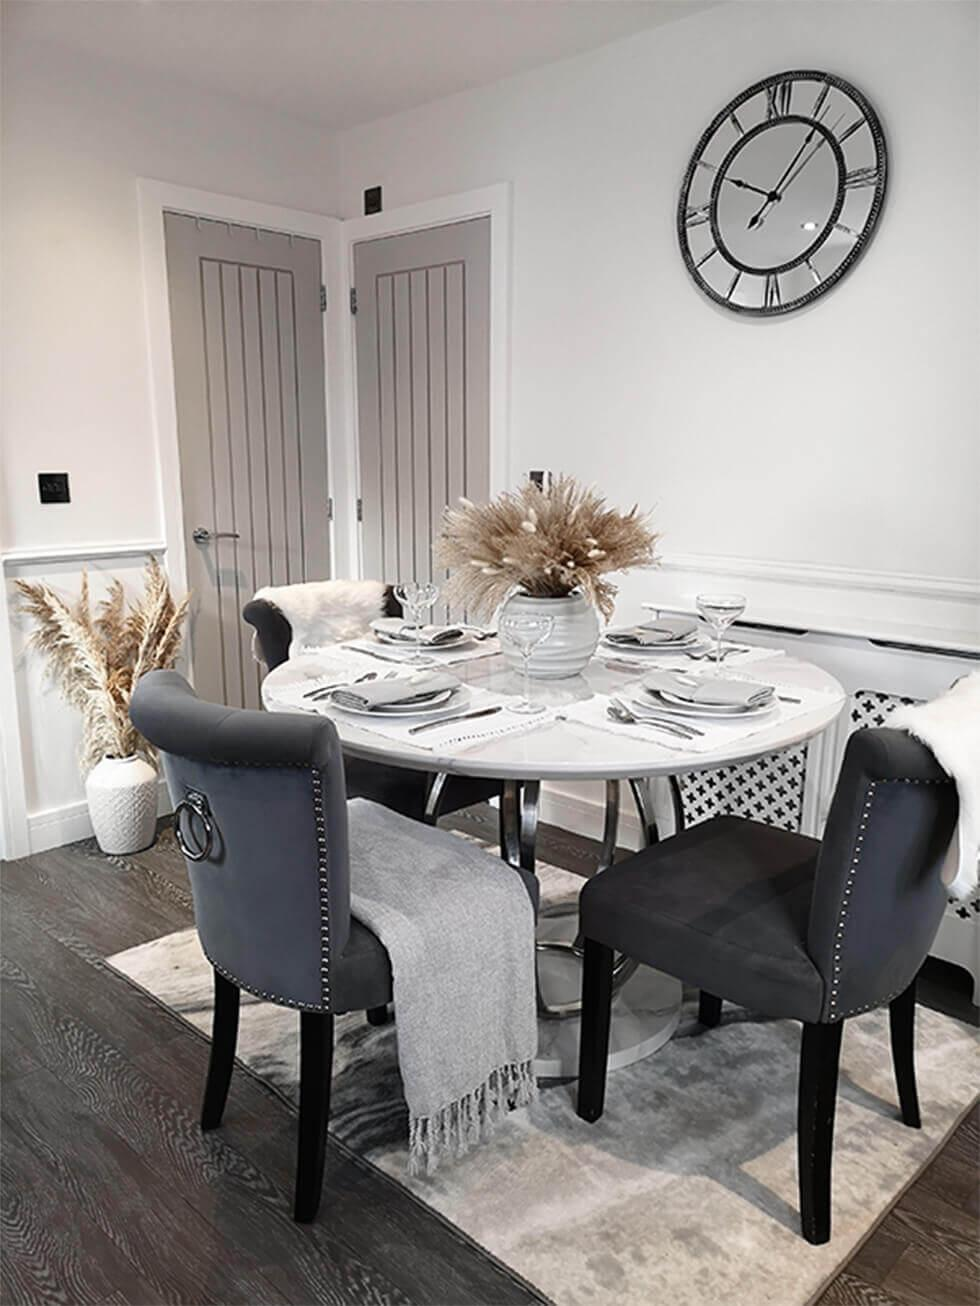 Open plan dining space with round marble table, grey fabric dining chairs and grey doors